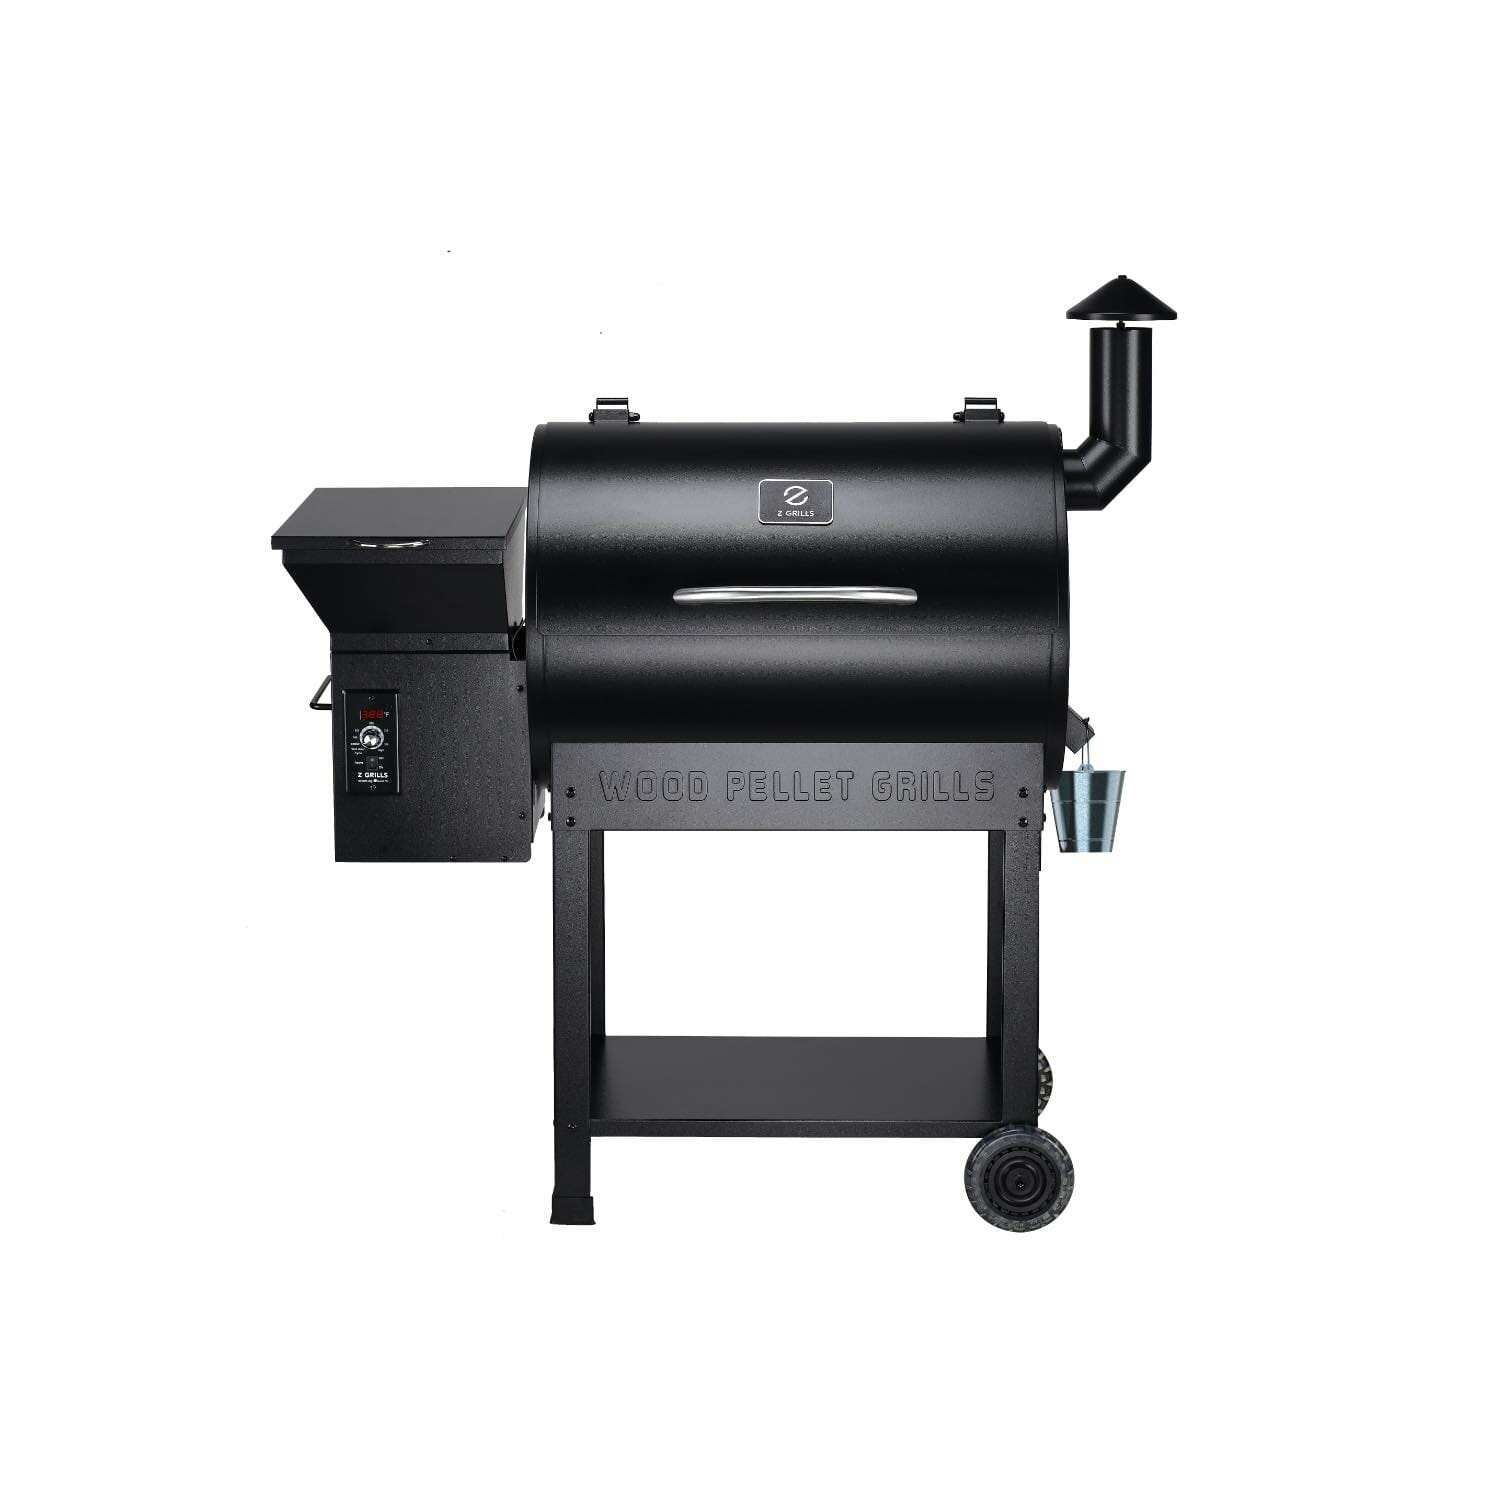 Z Grills 7002B wood pellet smoker grill rack front view